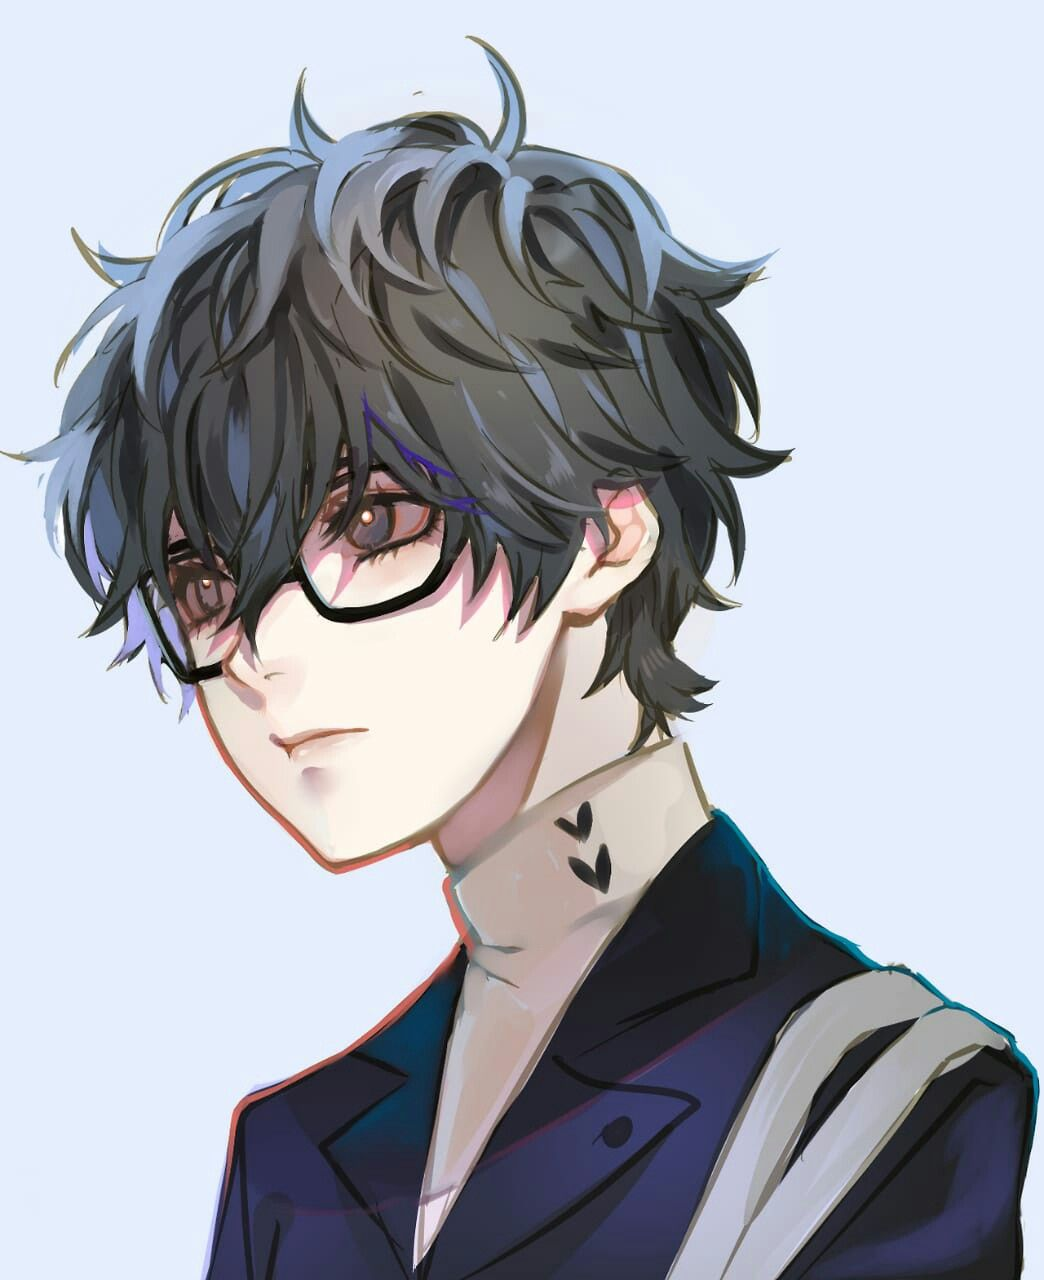 Pin By Soul On Anime People Anime Glasses Boy Persona 5 Joker Persona 5